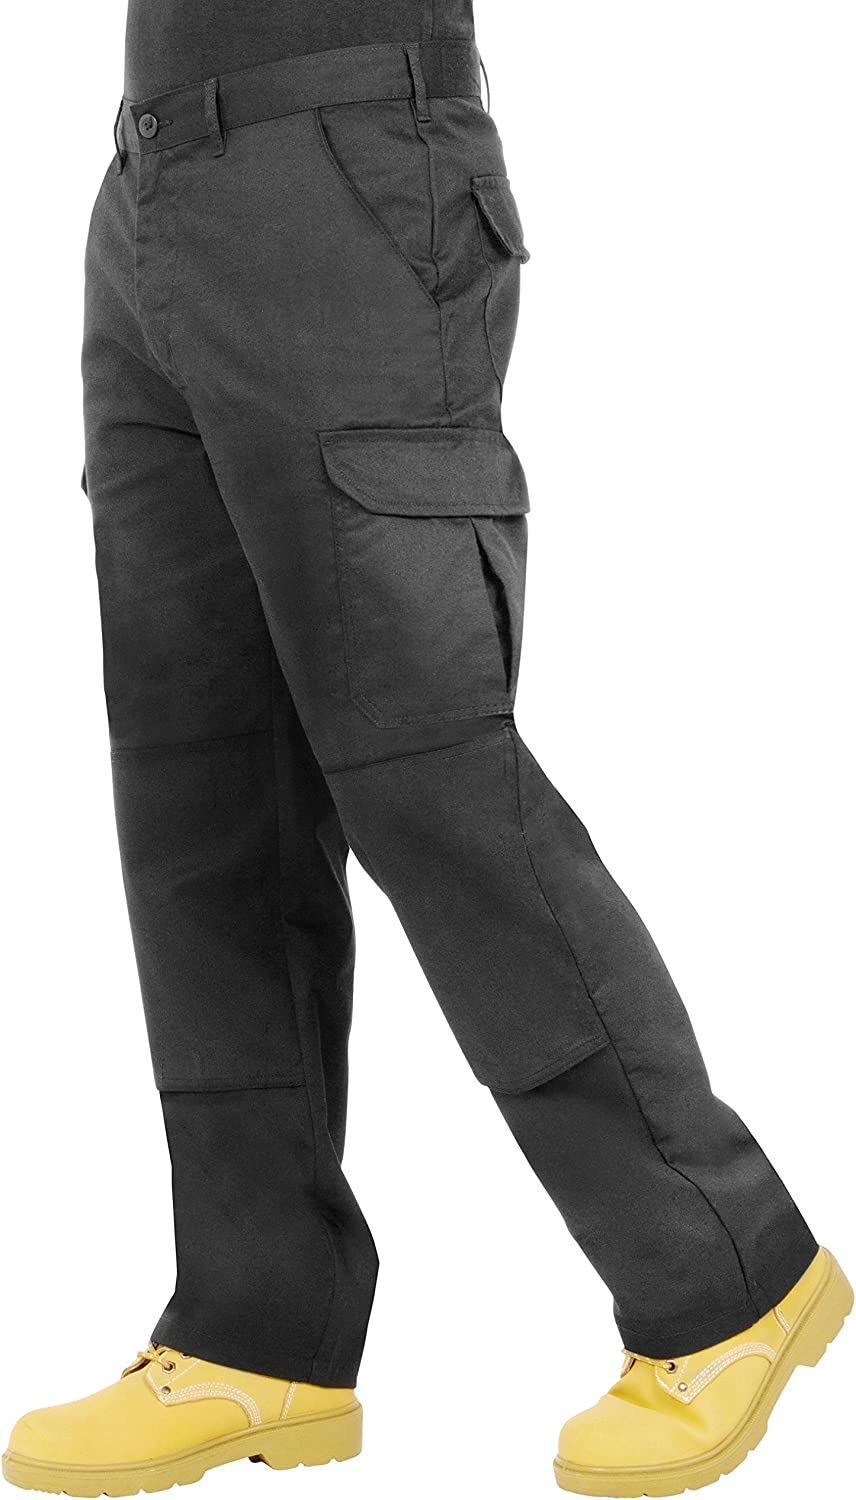 Endurance Mens Cargo Combat Work Trouser with Knee Pad Pockets and Reinforced Seams Grey//Black /& Black//Grey Navy Available in Black